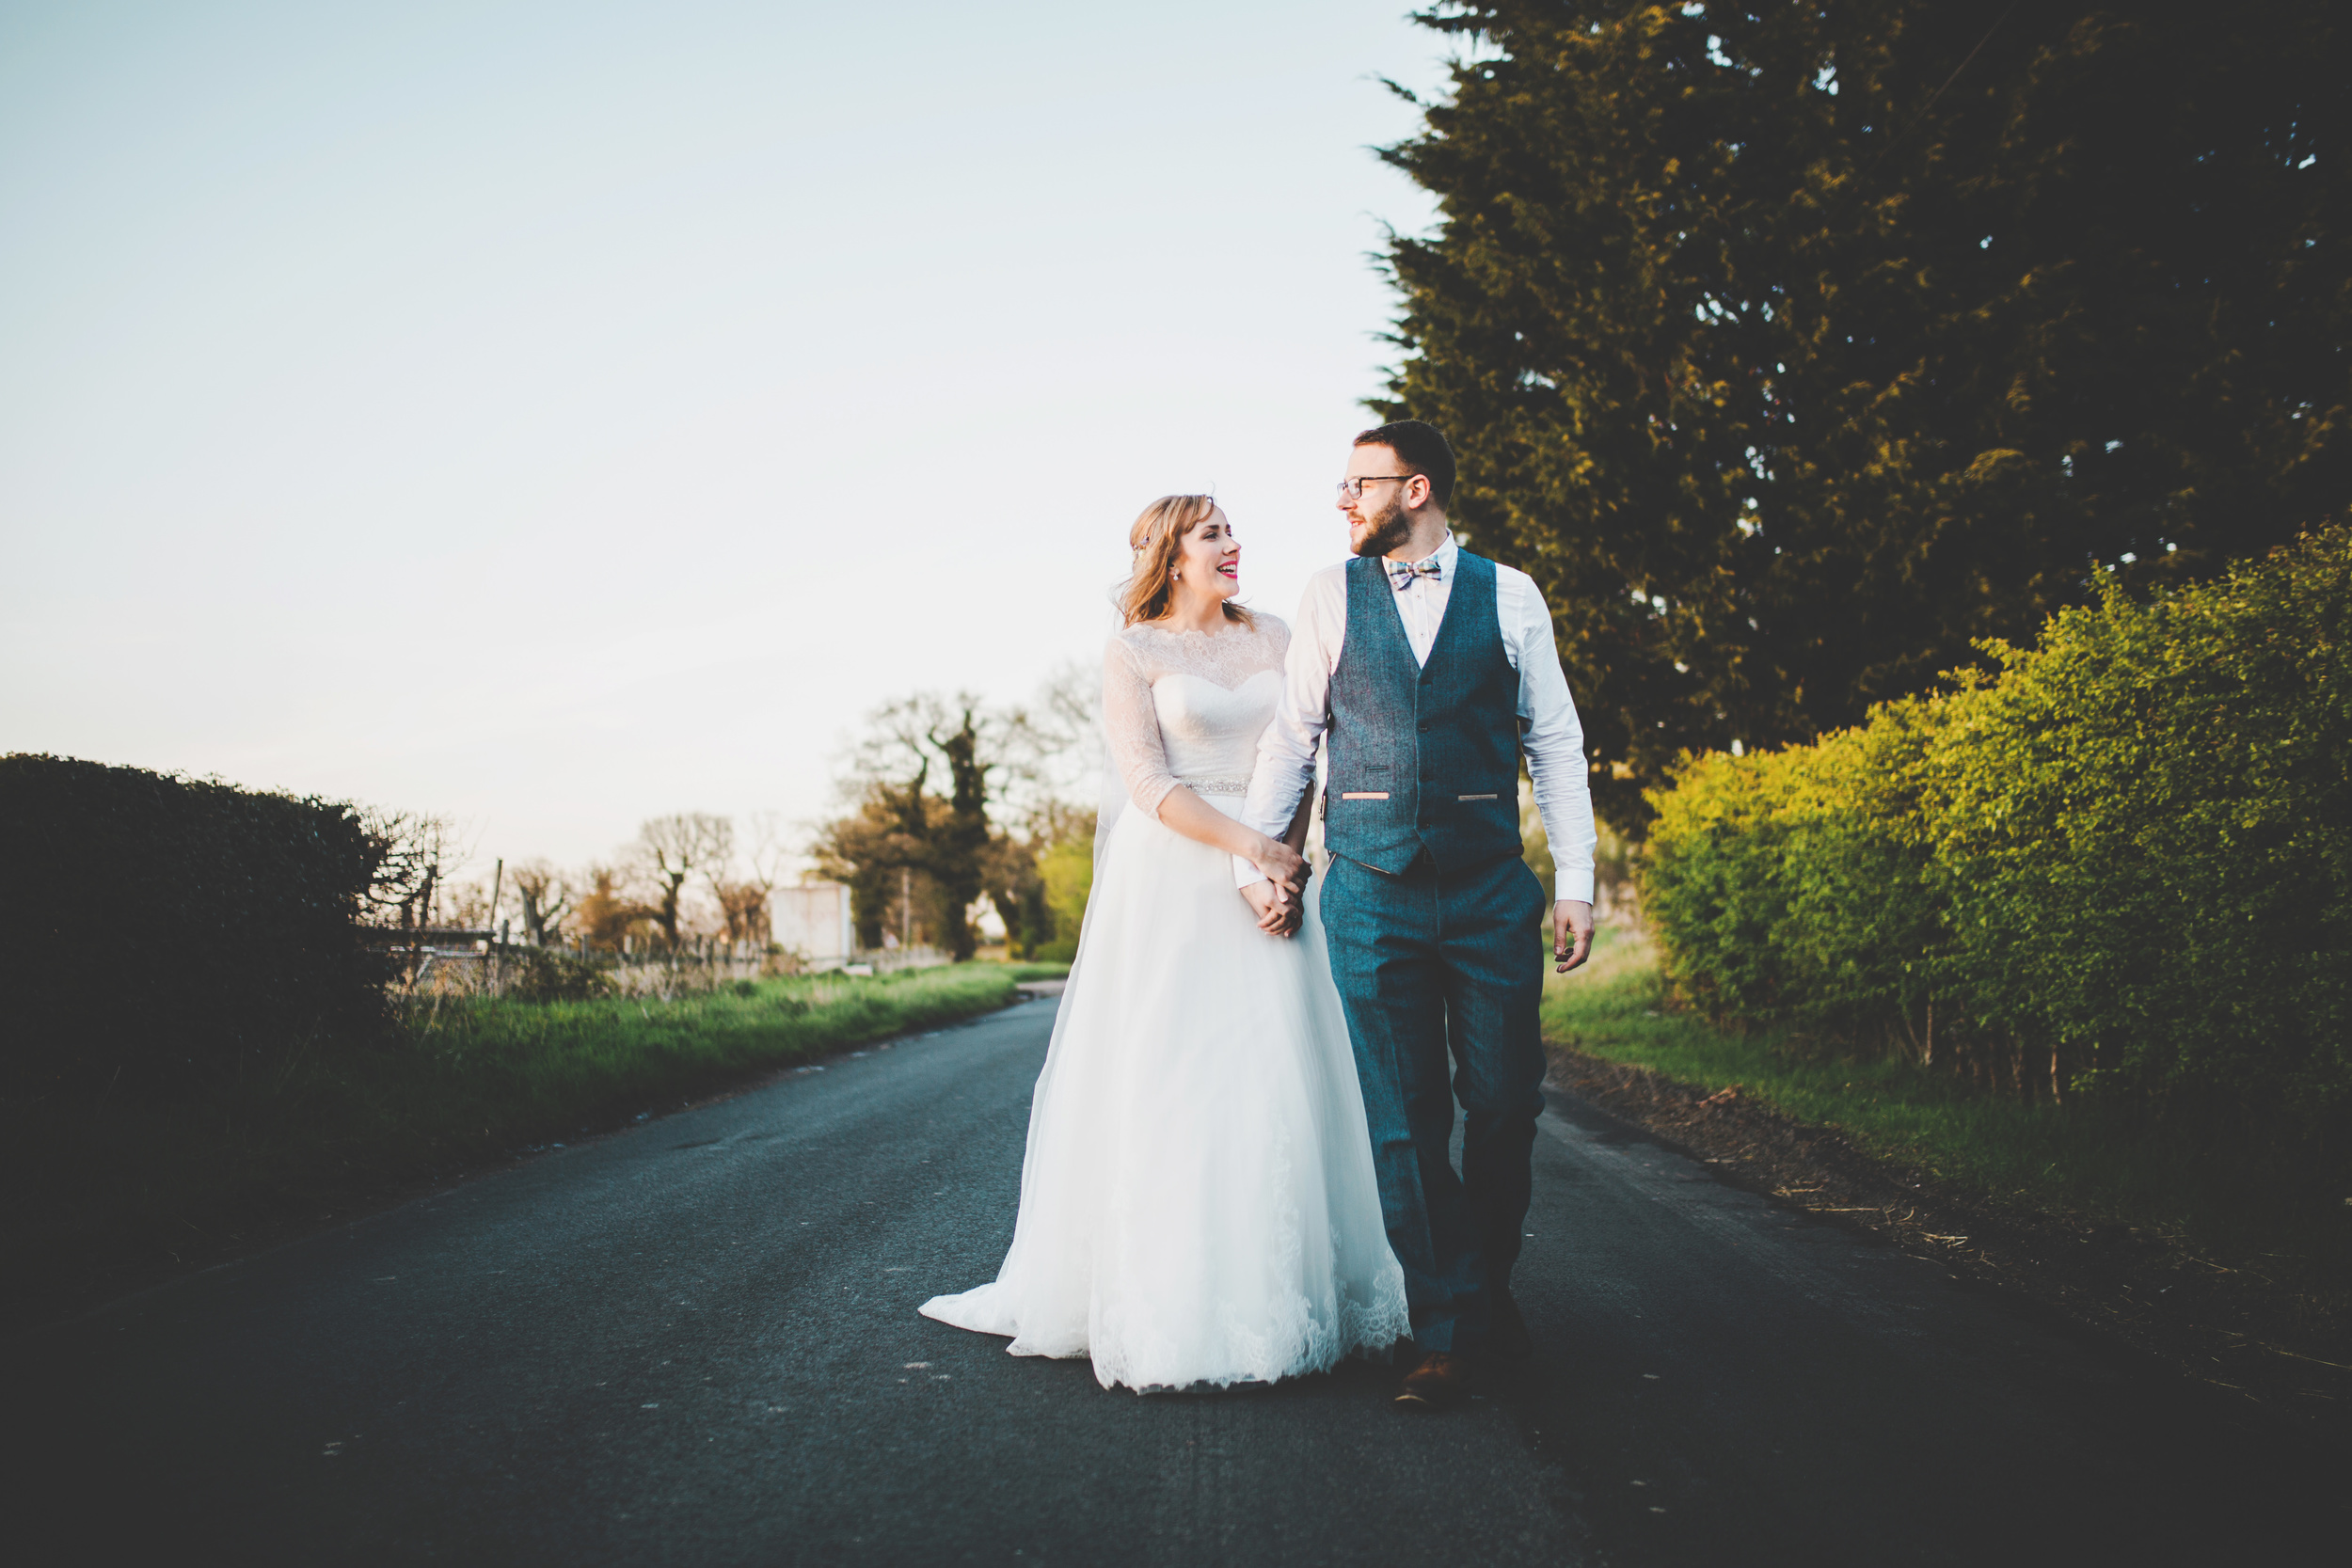 walking in the lanes - relaxed wedding photography